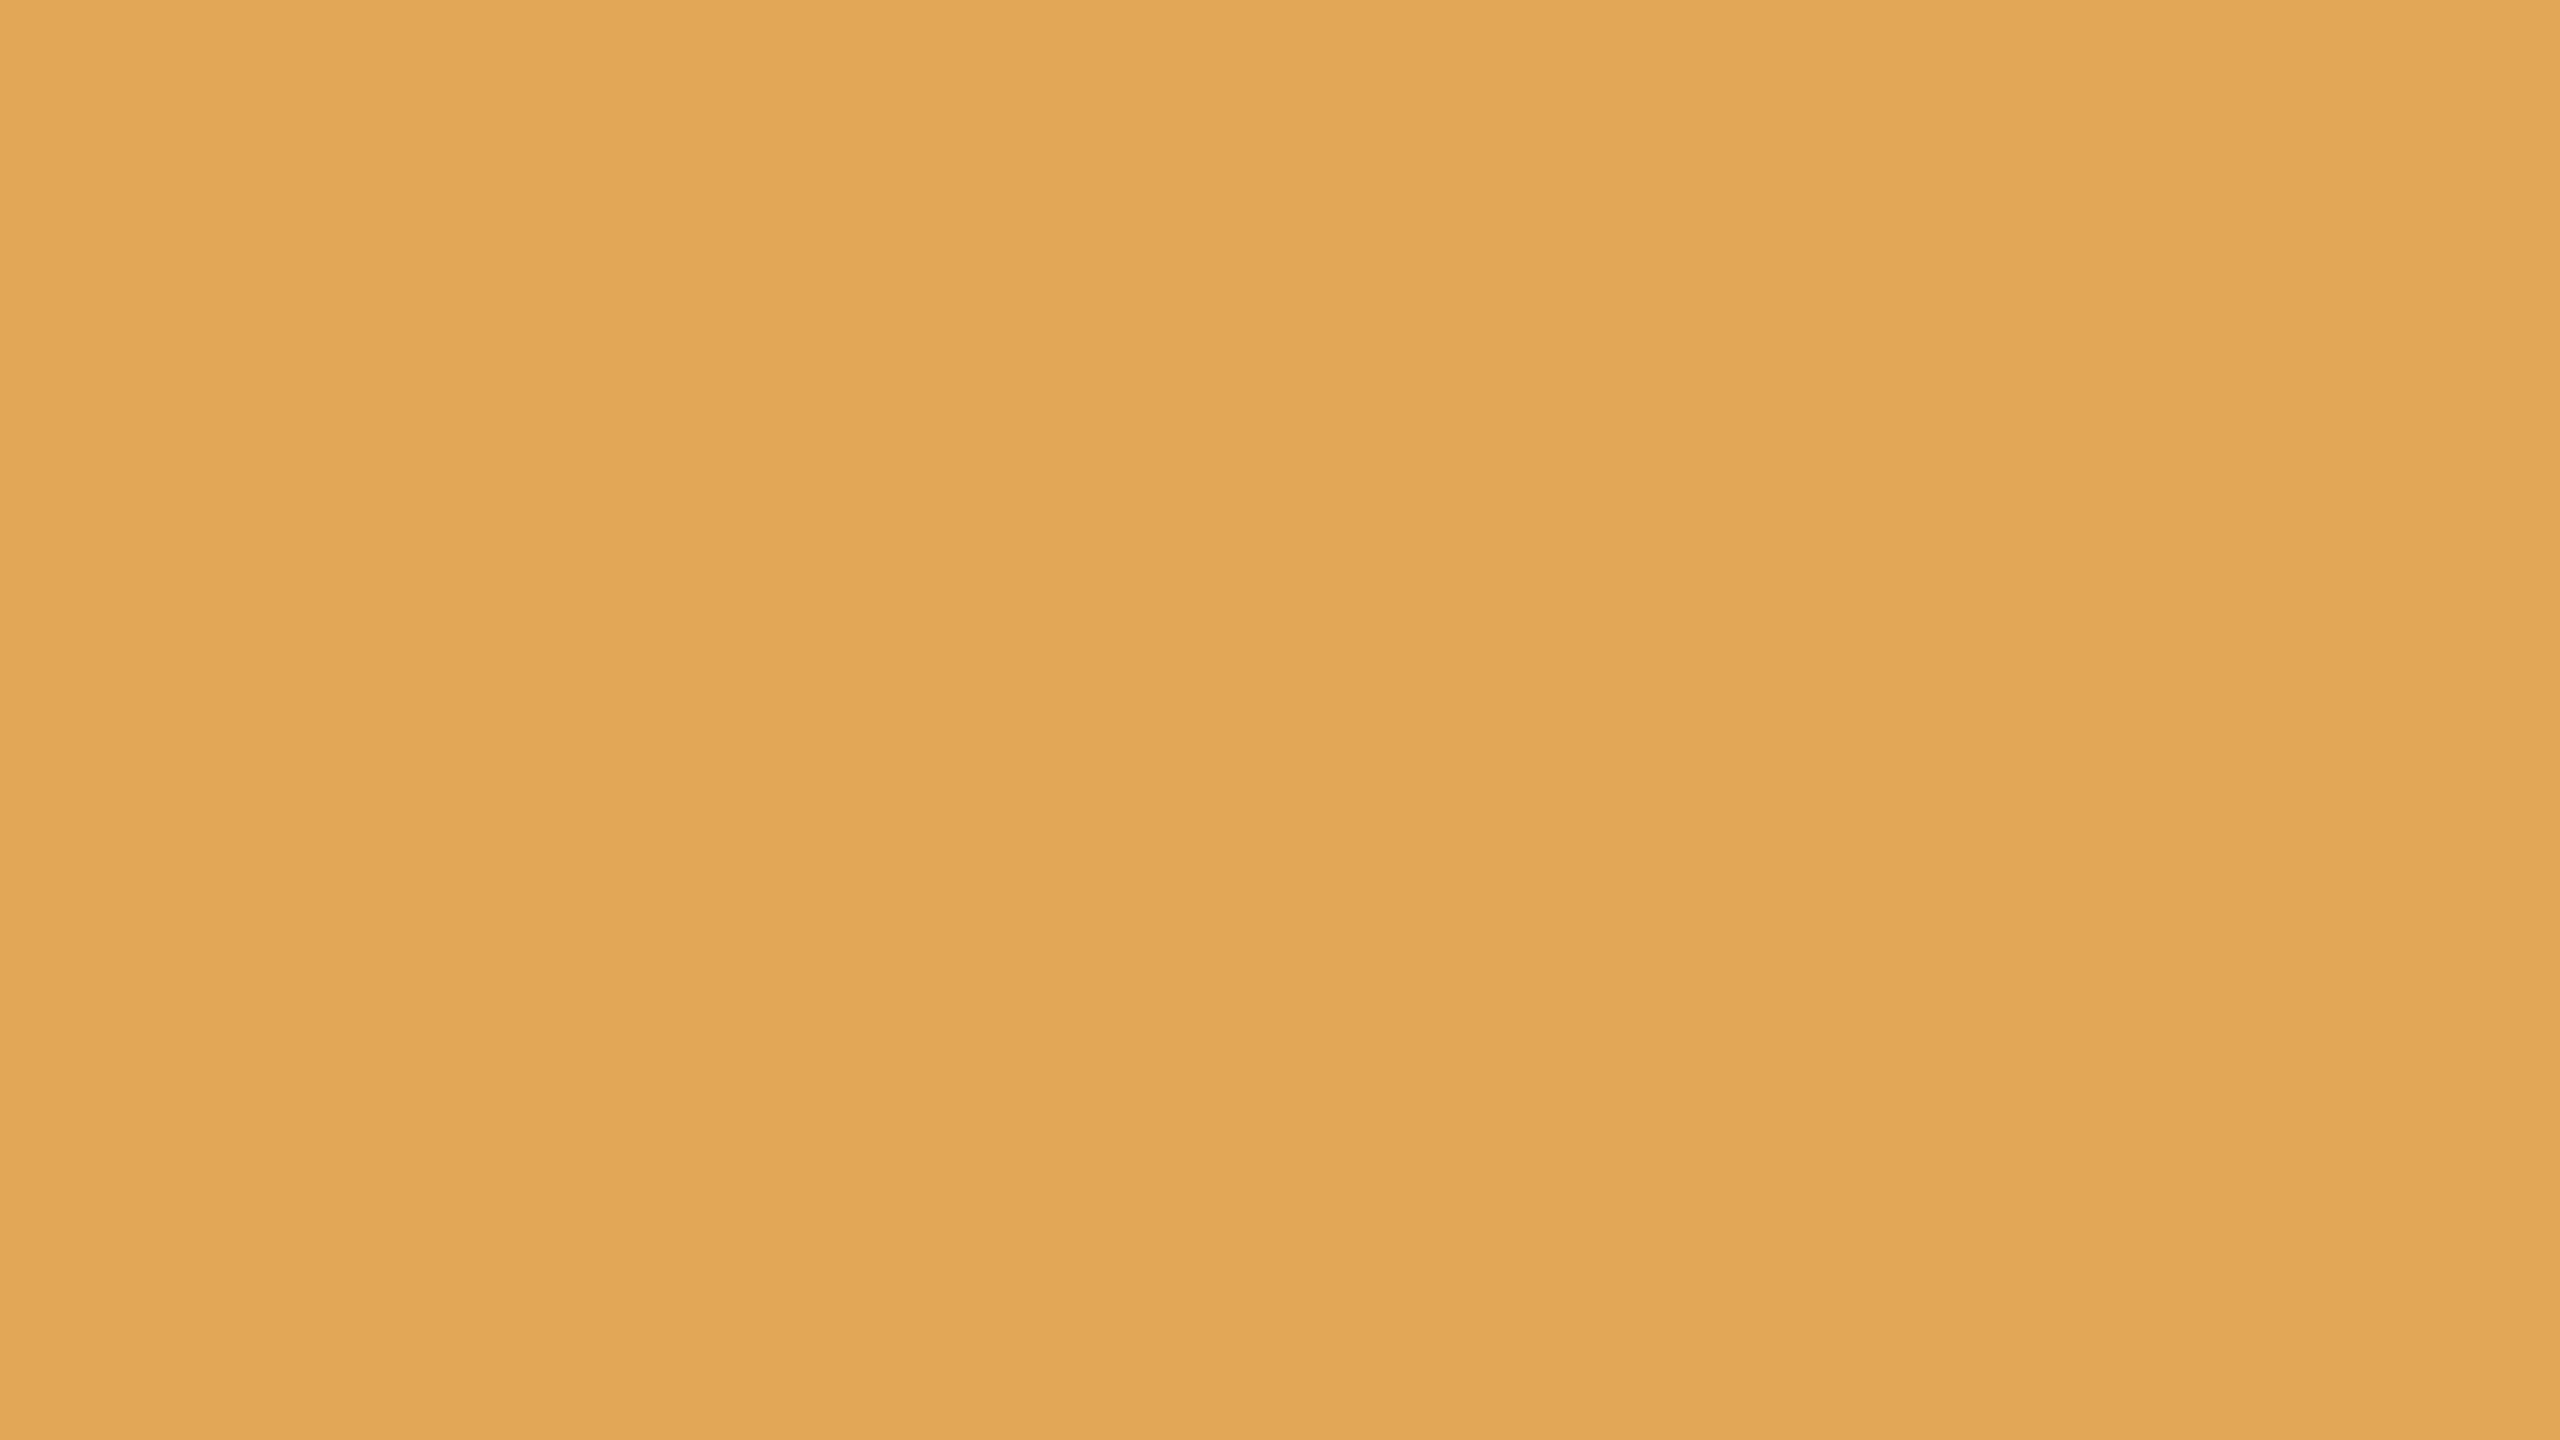 2560x1440 Indian Yellow Solid Color Background